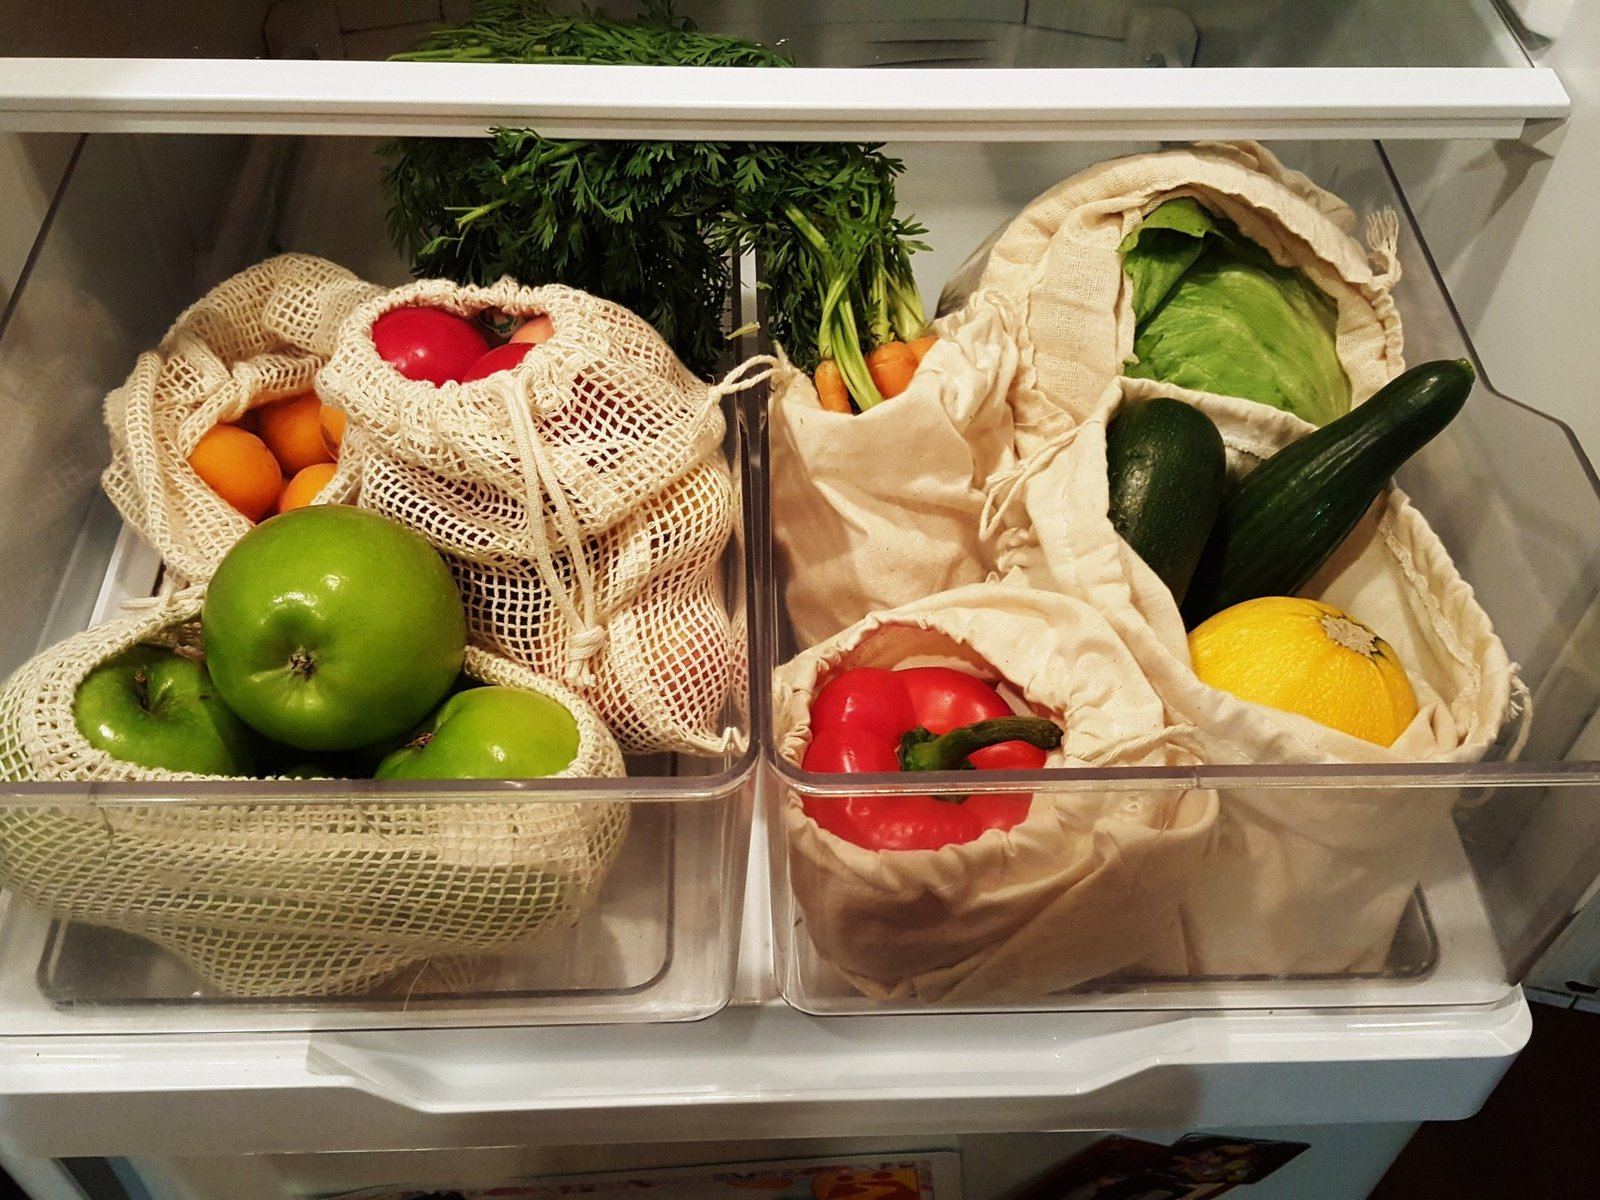 Large 4-Pack Reusable Produce Bags image